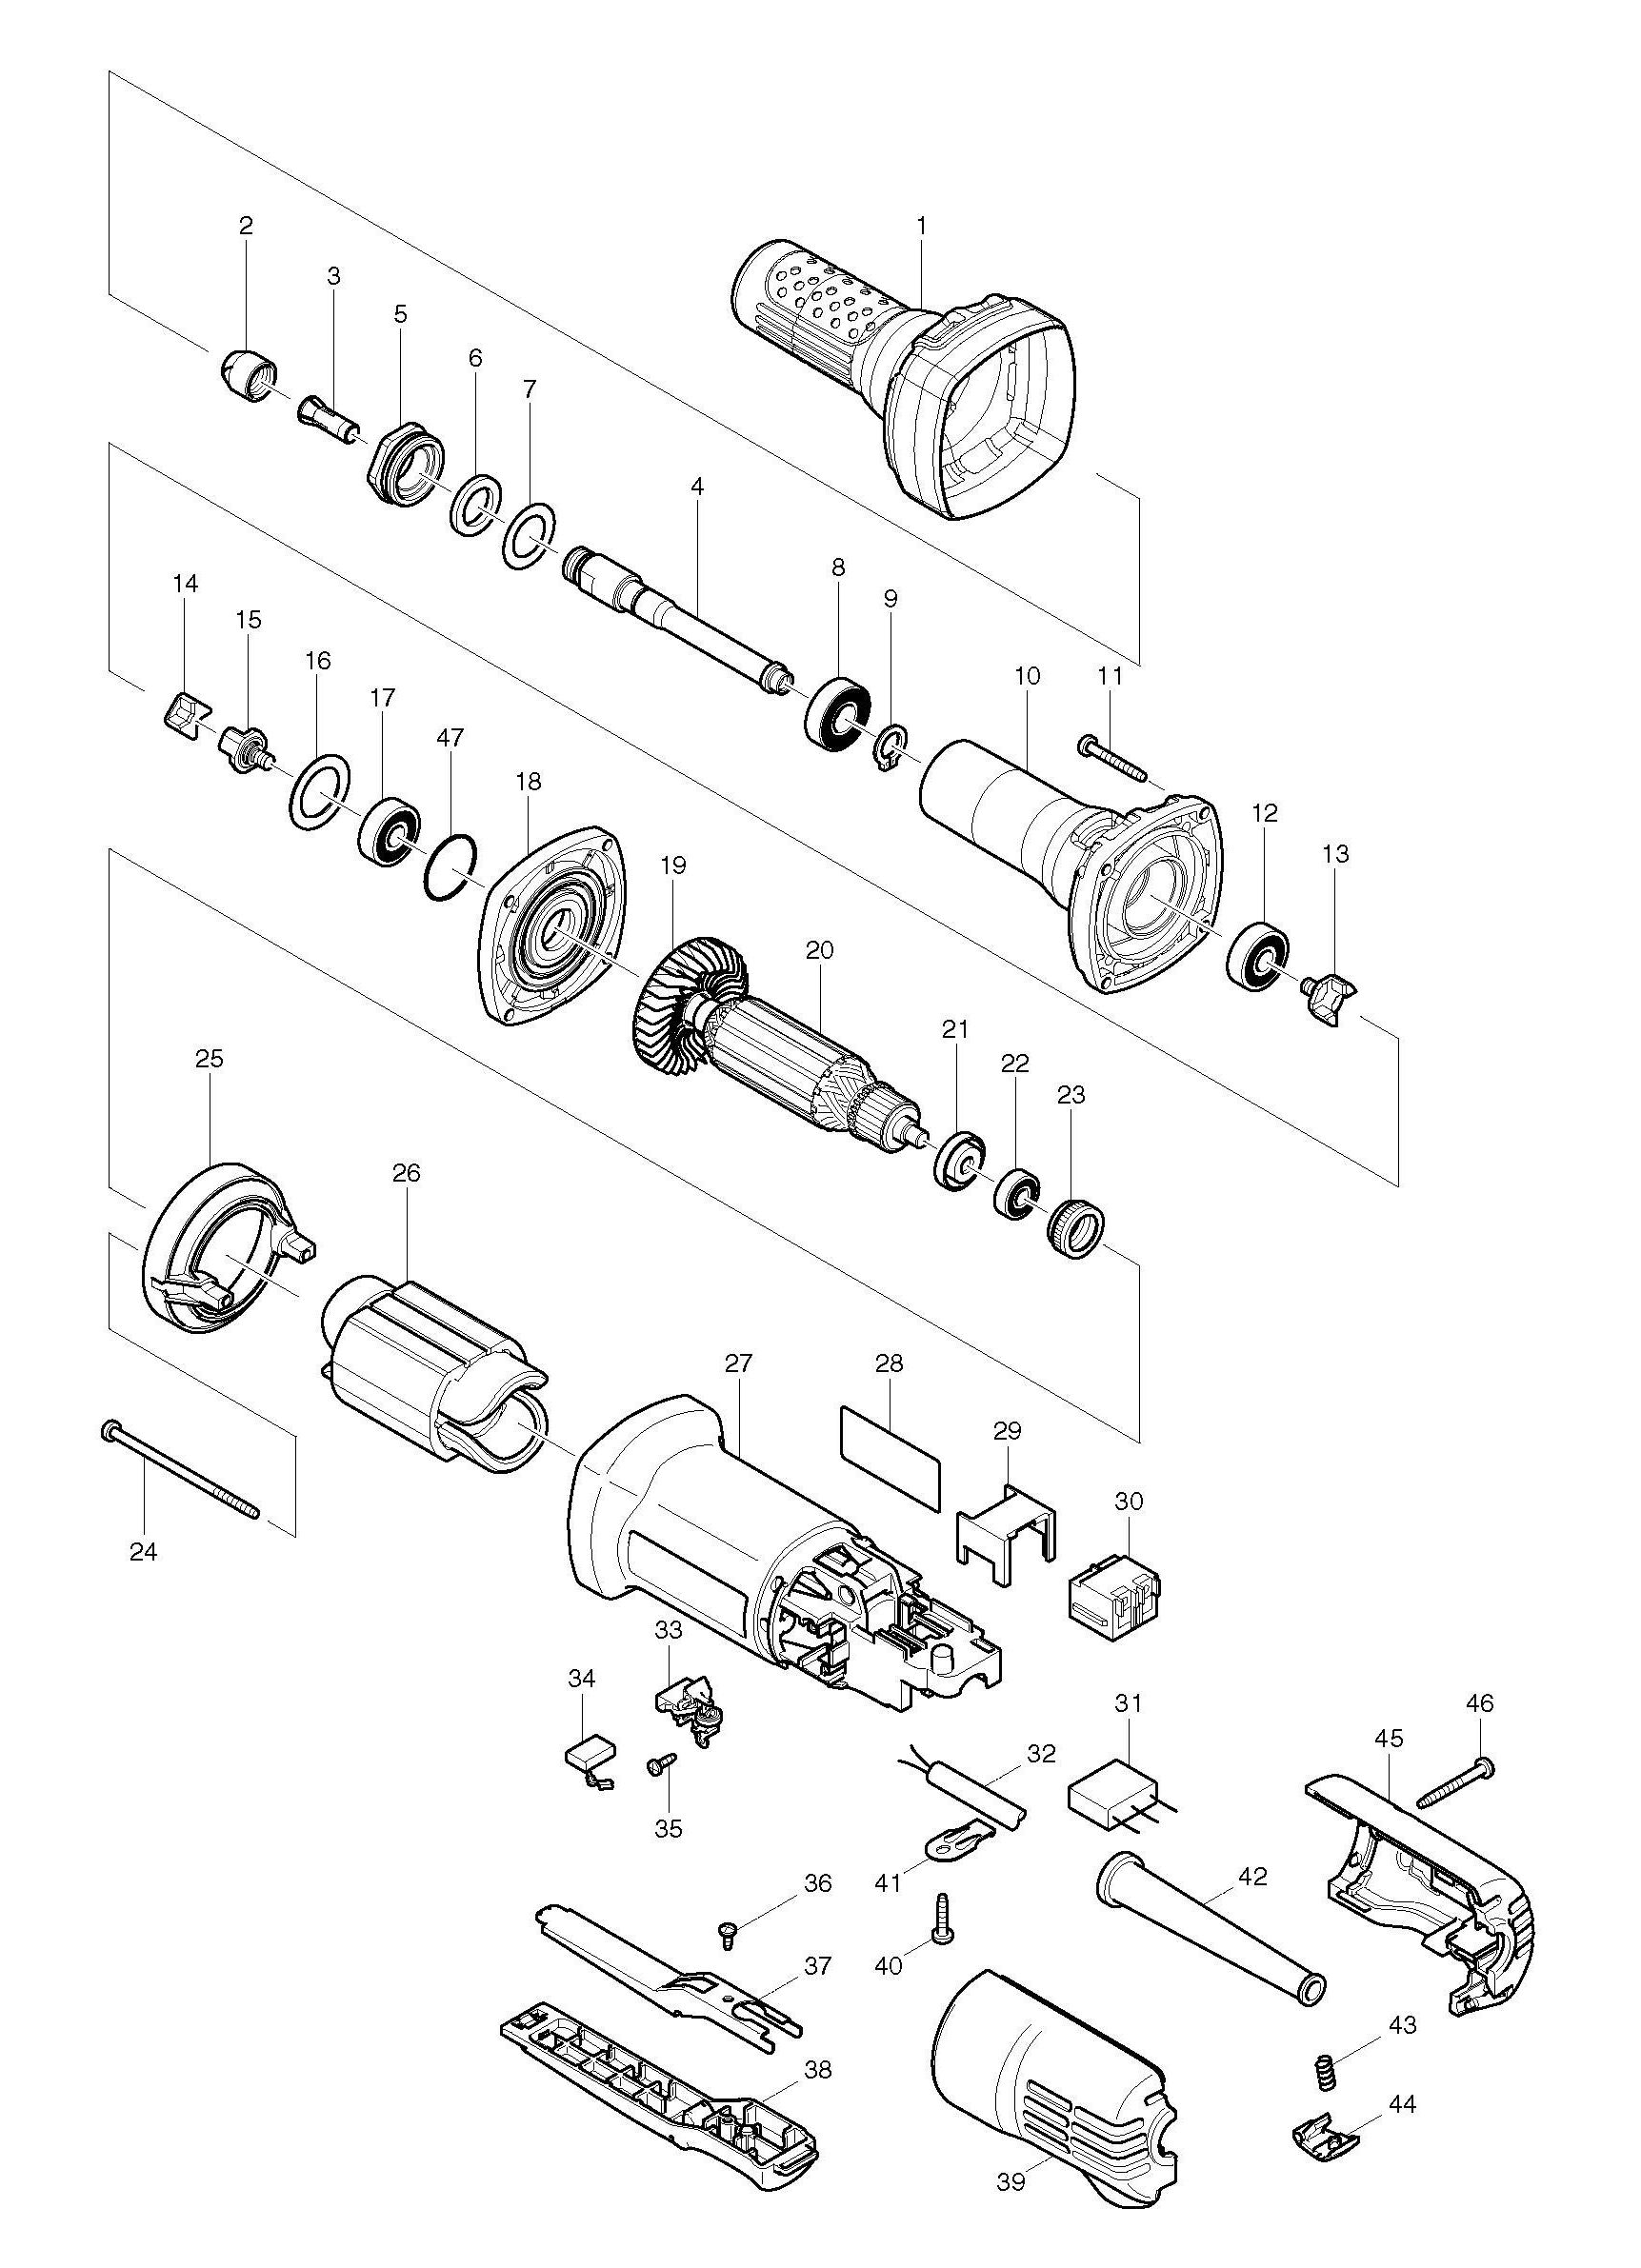 power tool schematic